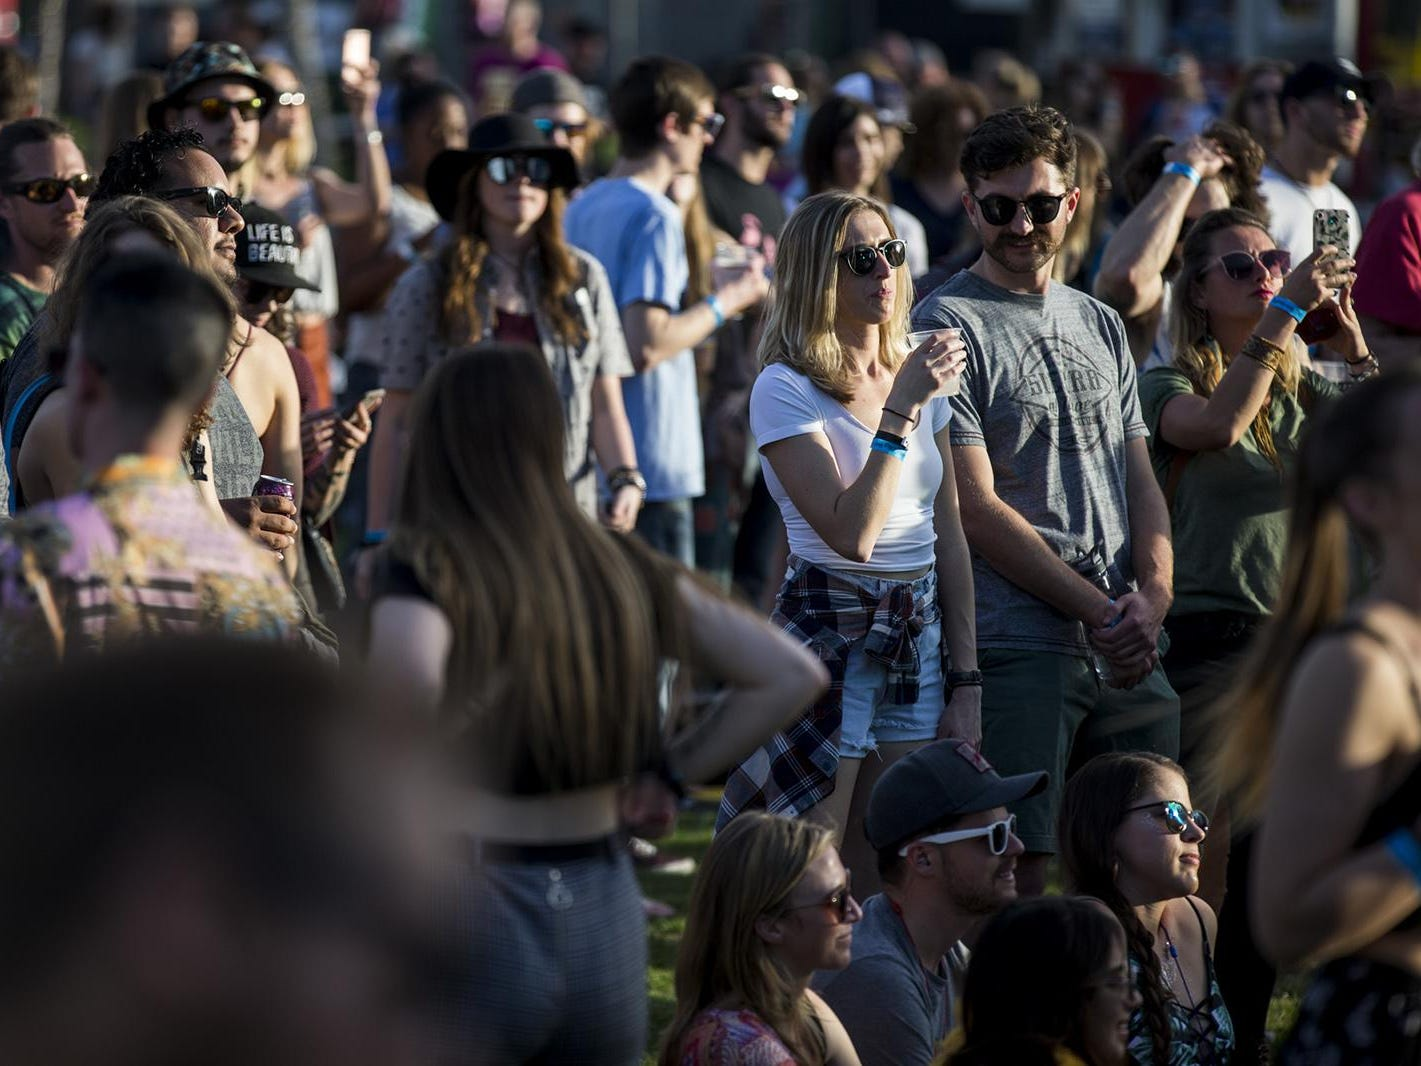 Fans listen to The Hip Abduction perform during McDowell Mountain Music Festival on Friday, March 1, 2019, at Margaret T. Hance Park in Phoenix.